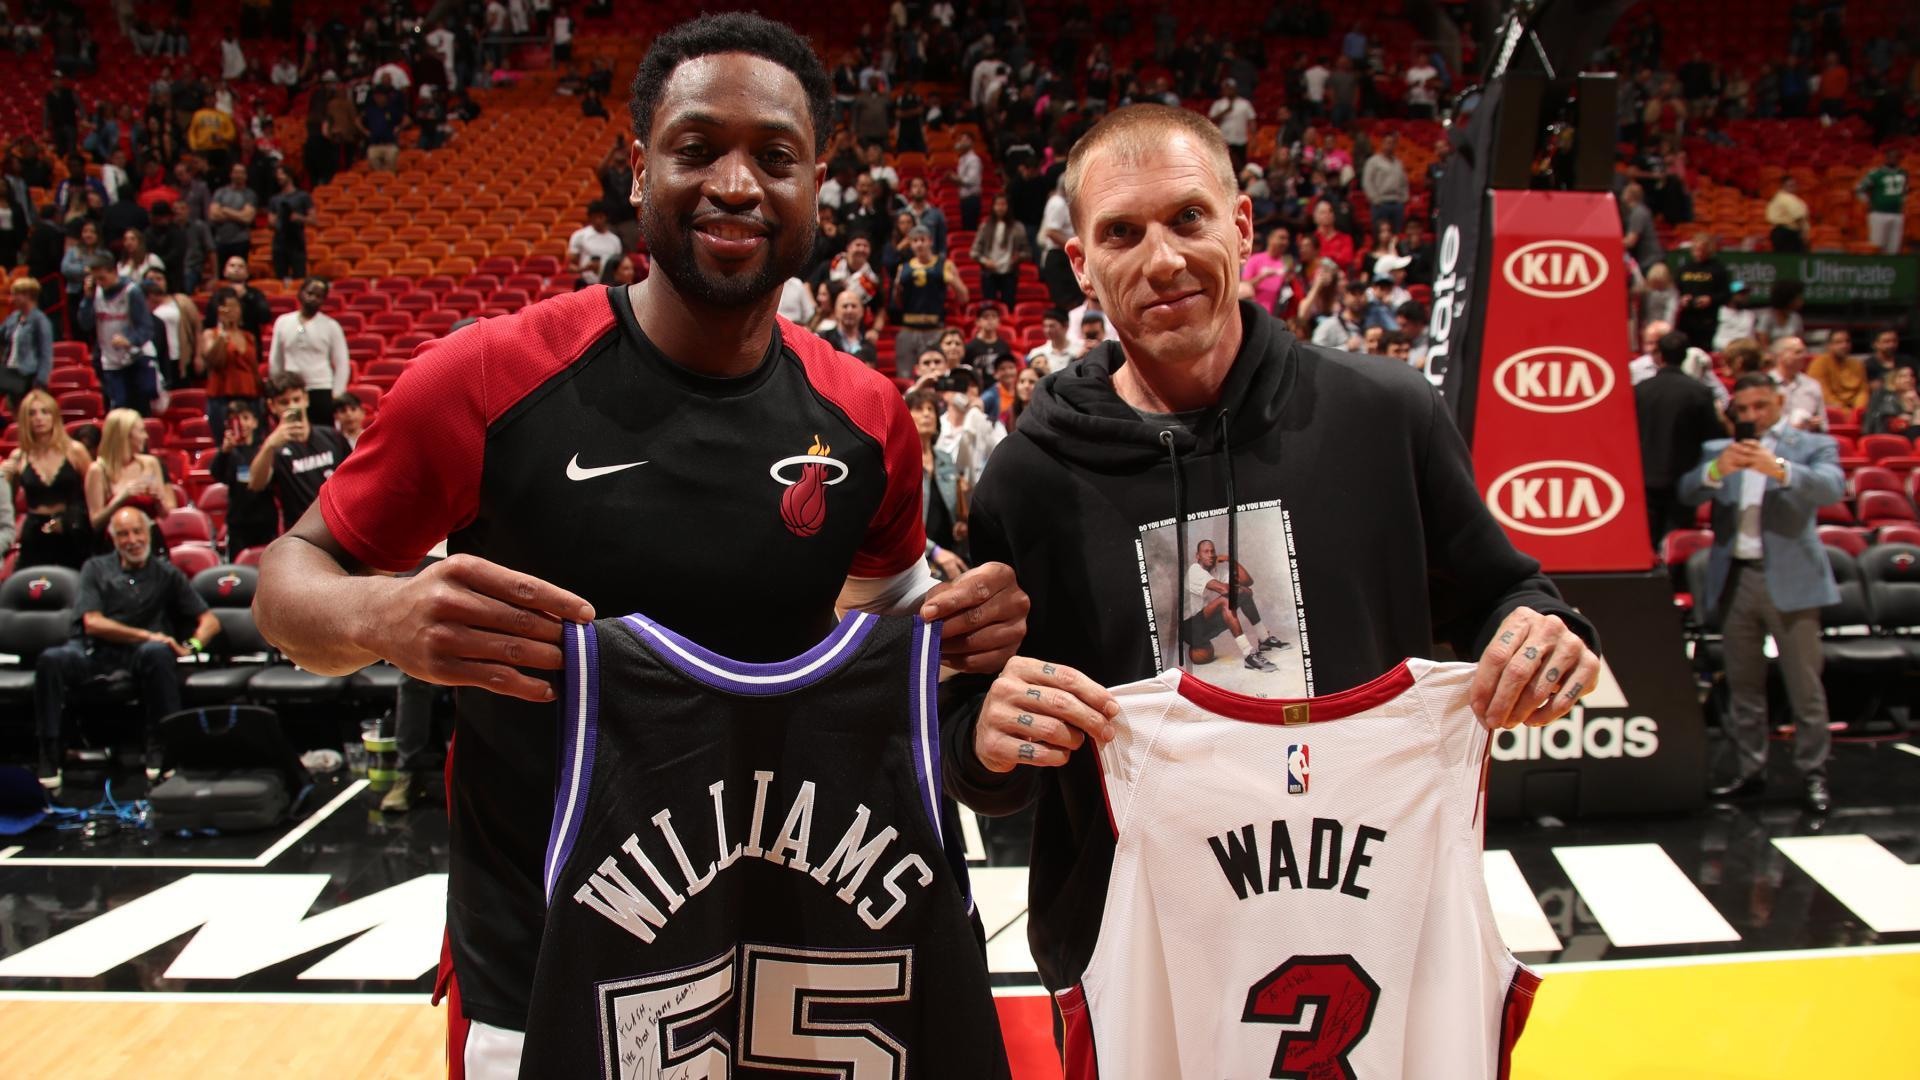 Zaire Wade introduces Dwyane Wade to Heat fans for final home game